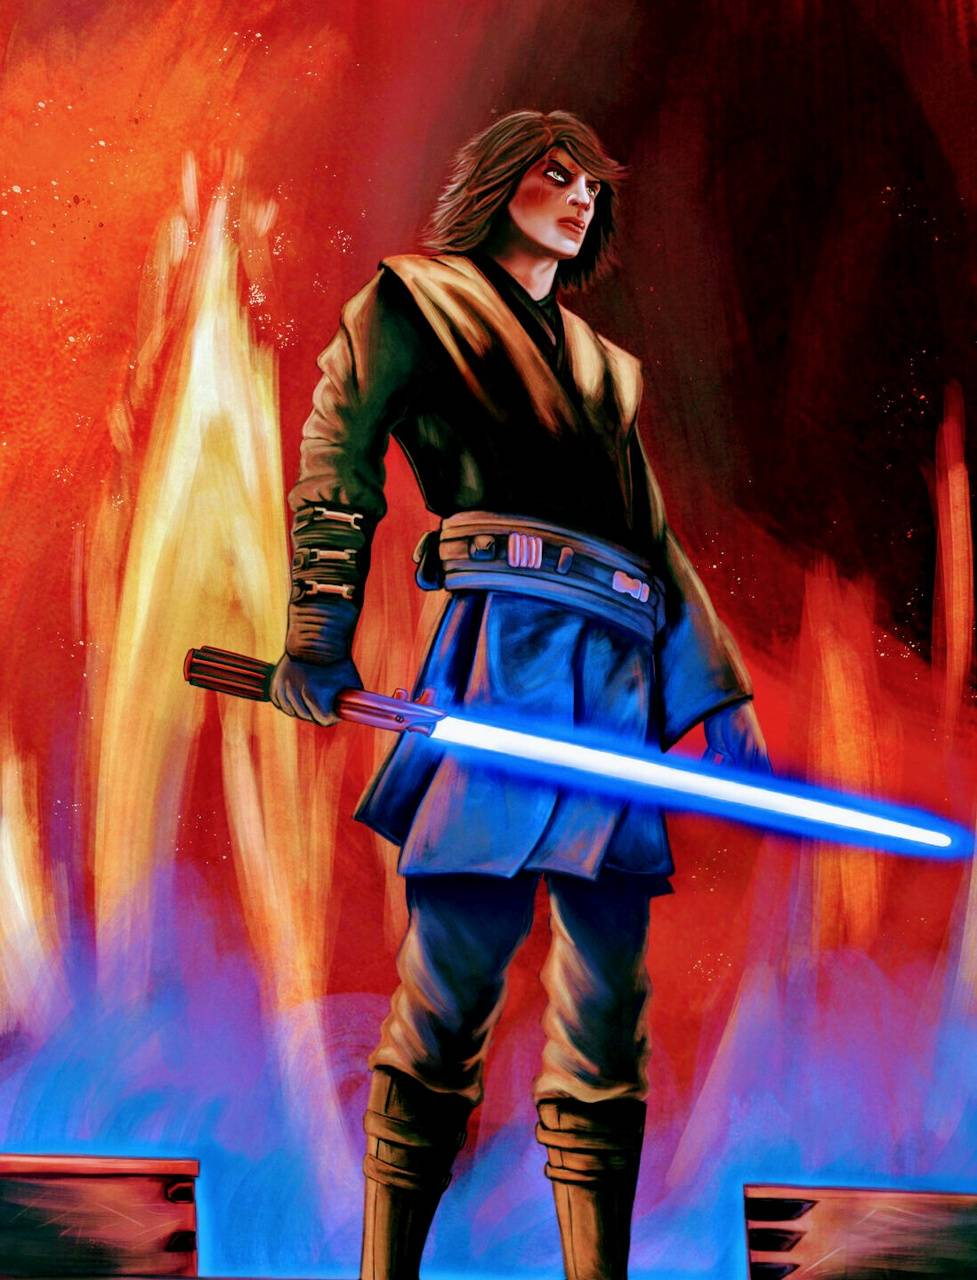 The Best Anakin Skywalker Wallpapers  Pictures